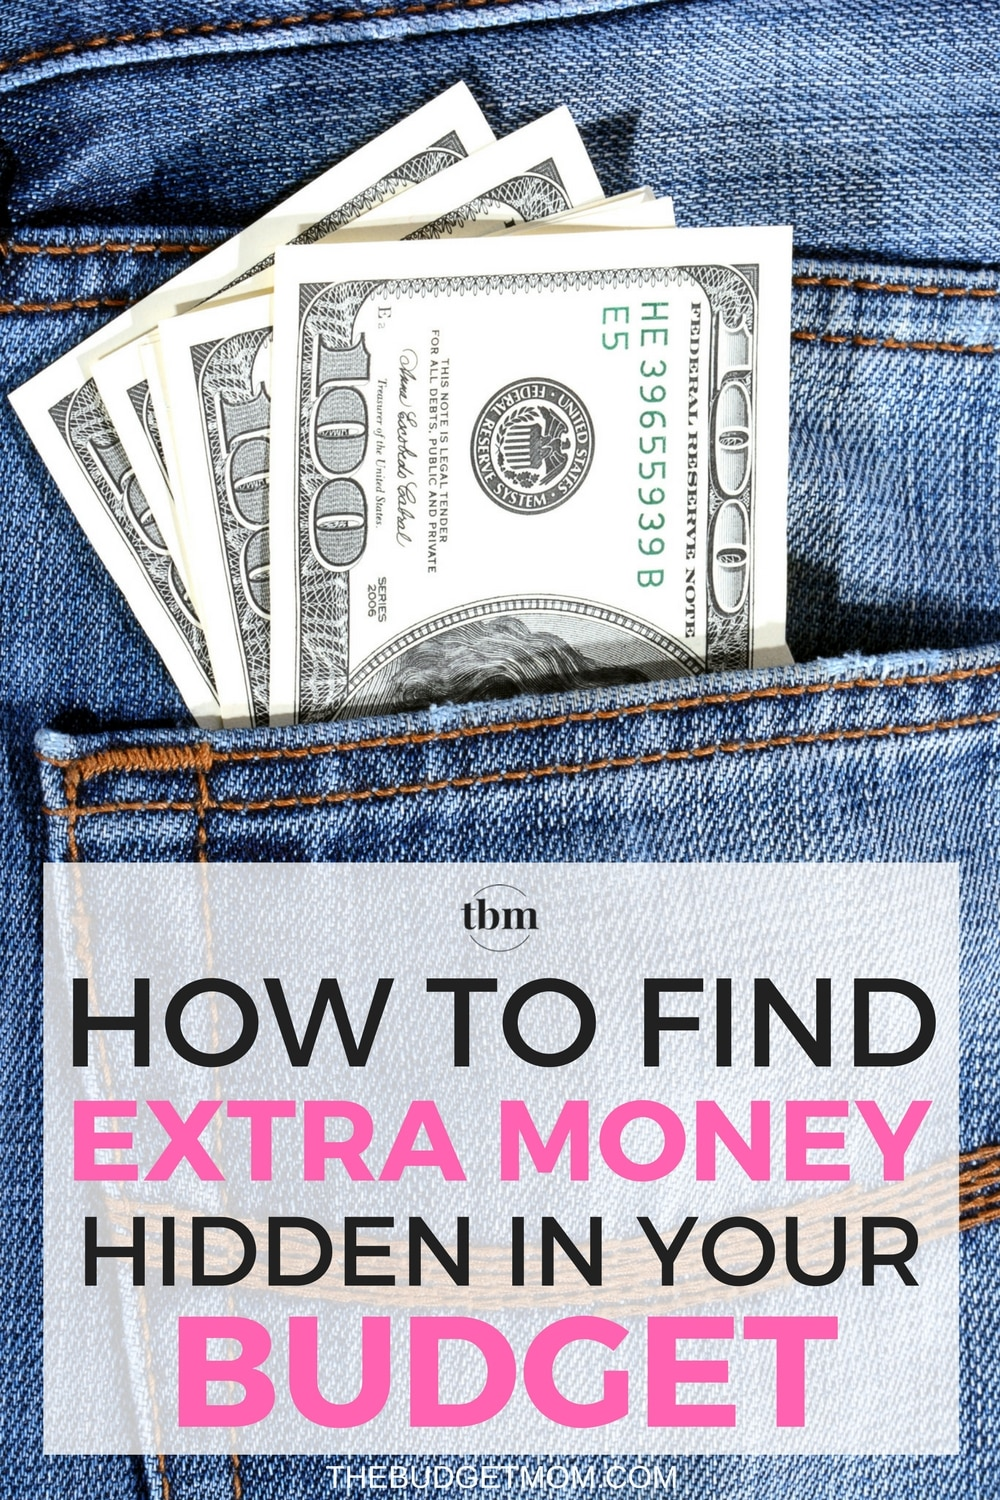 I was able to find an extra $200 in my budget by reducing my fixed expenses, and by making a subtle change on how I spent my money. Here is how I was able to afford a new expense when my budget was already stretched thin.